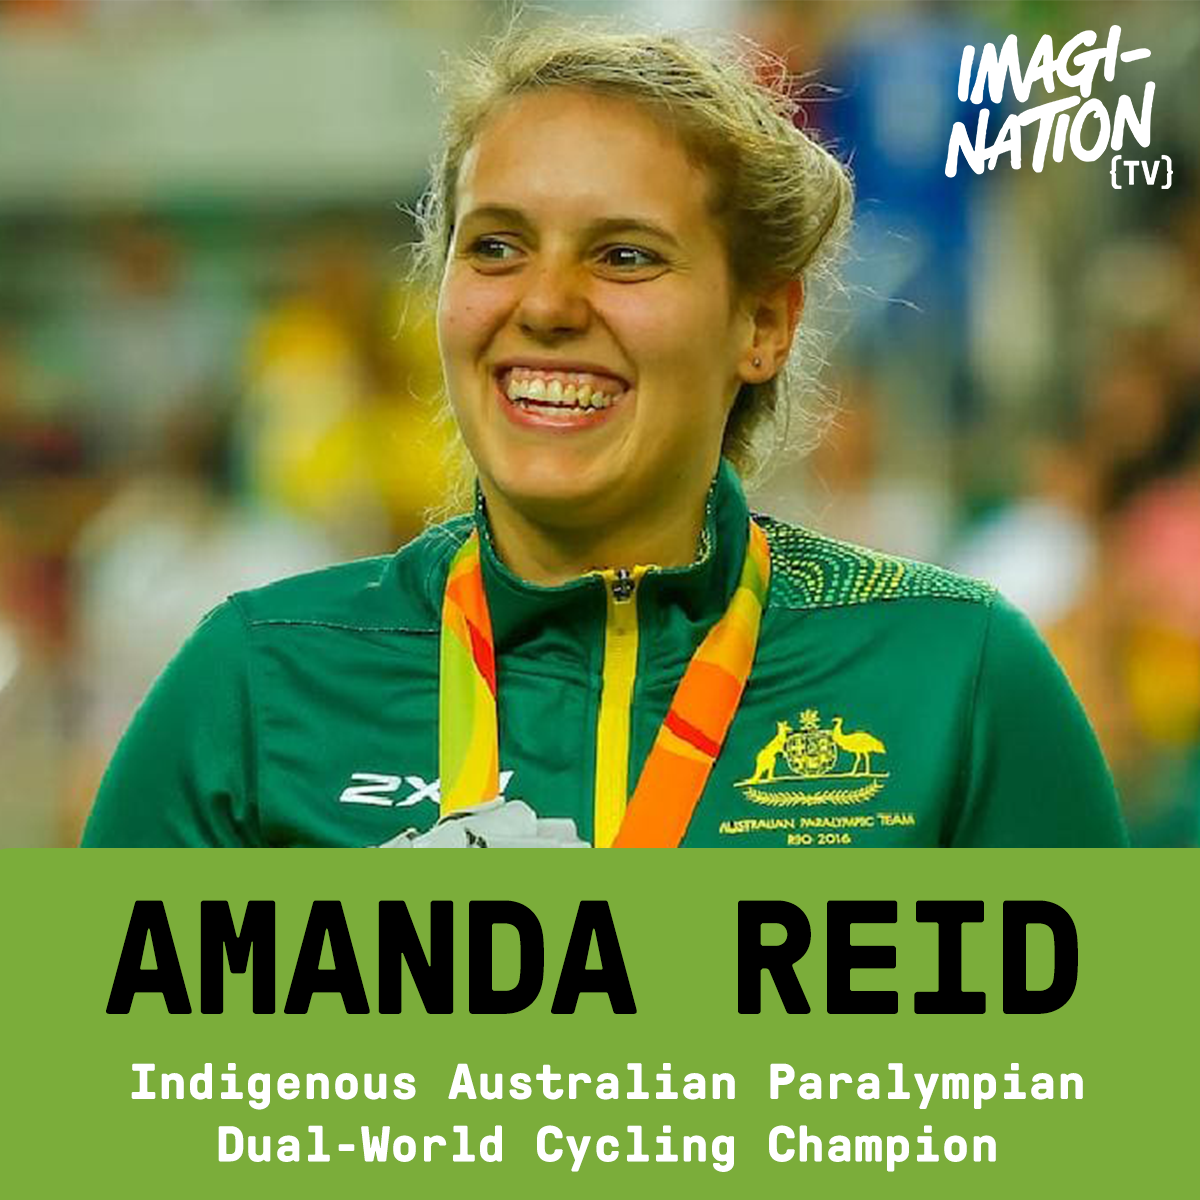 """Q&A - AMANDA REID ON DISCRIMINATION, BULLYING AND WINNING: """"I just leave it all on the track"""""""